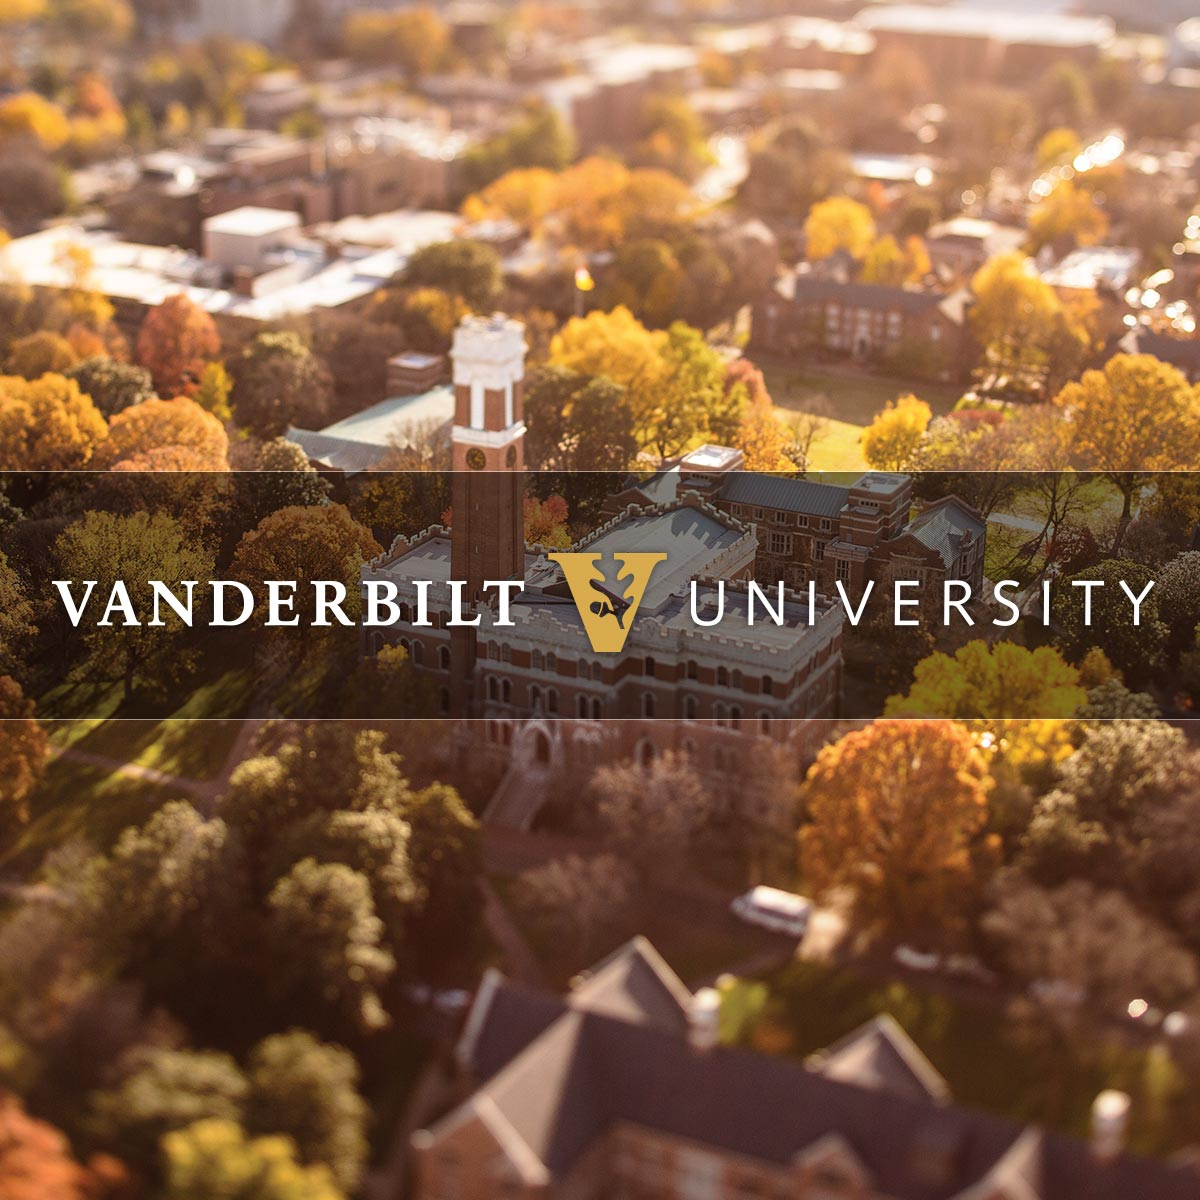 Karta Usa Nashville.Our Hometown Nashville Tennessee Vanderbilt University